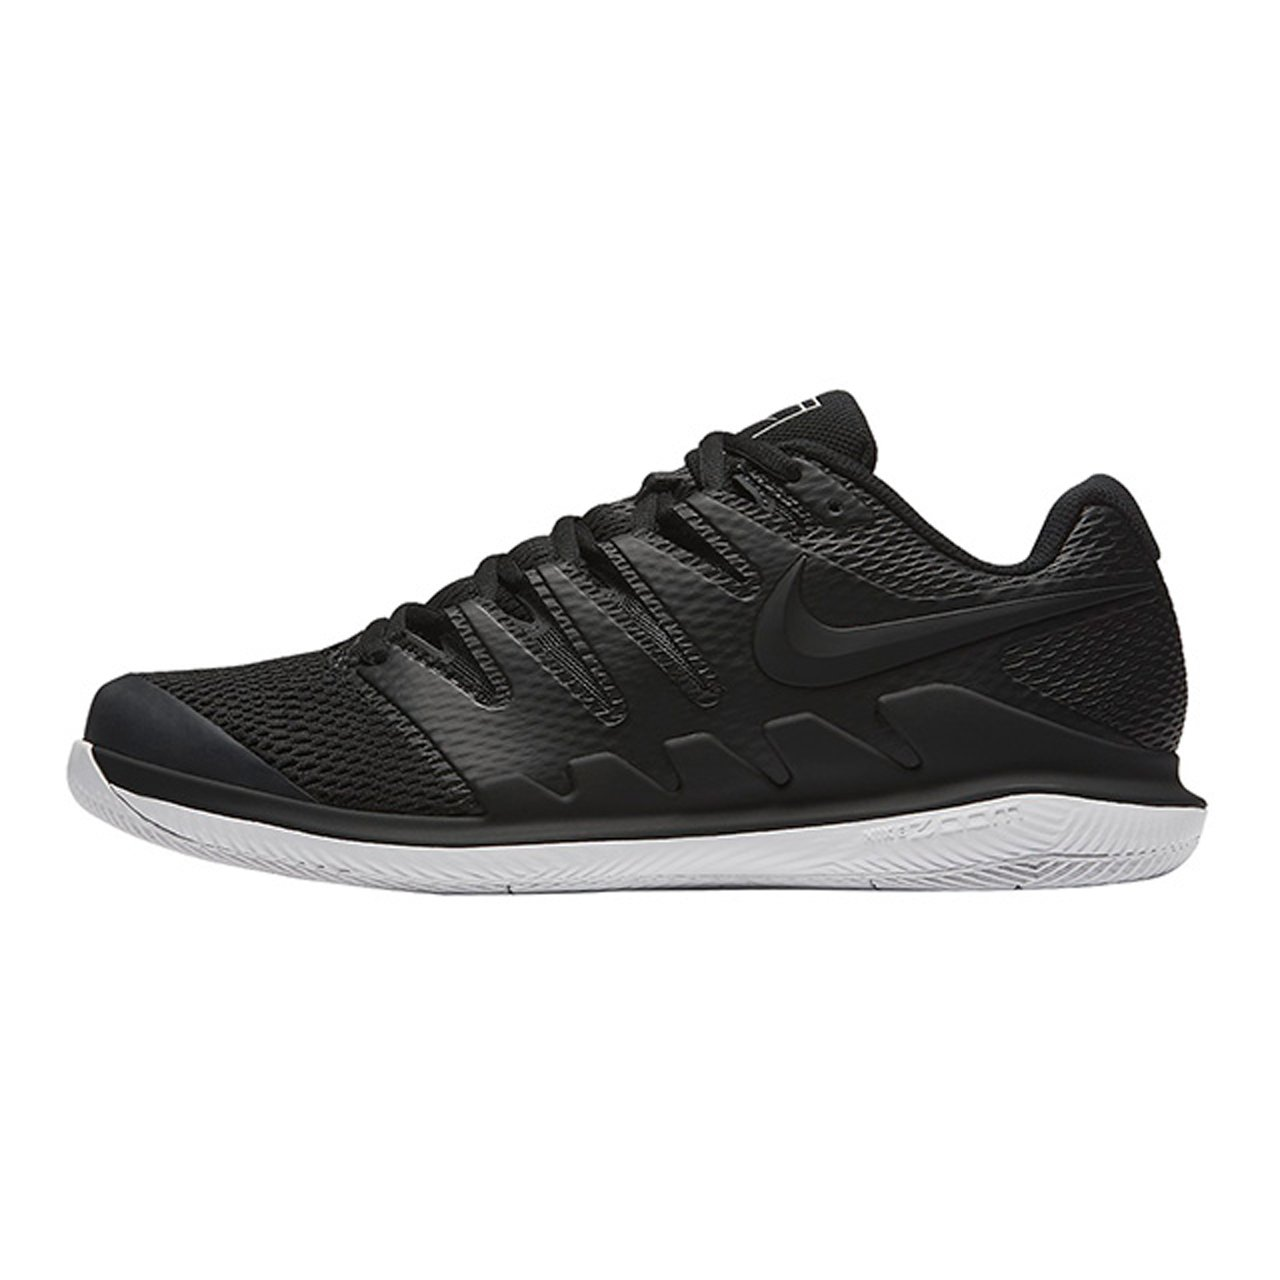 5b5cd2e640d6 Galleon - NIKE Men s Zoom Vapor X Tennis Shoes (10.5 D(M) US